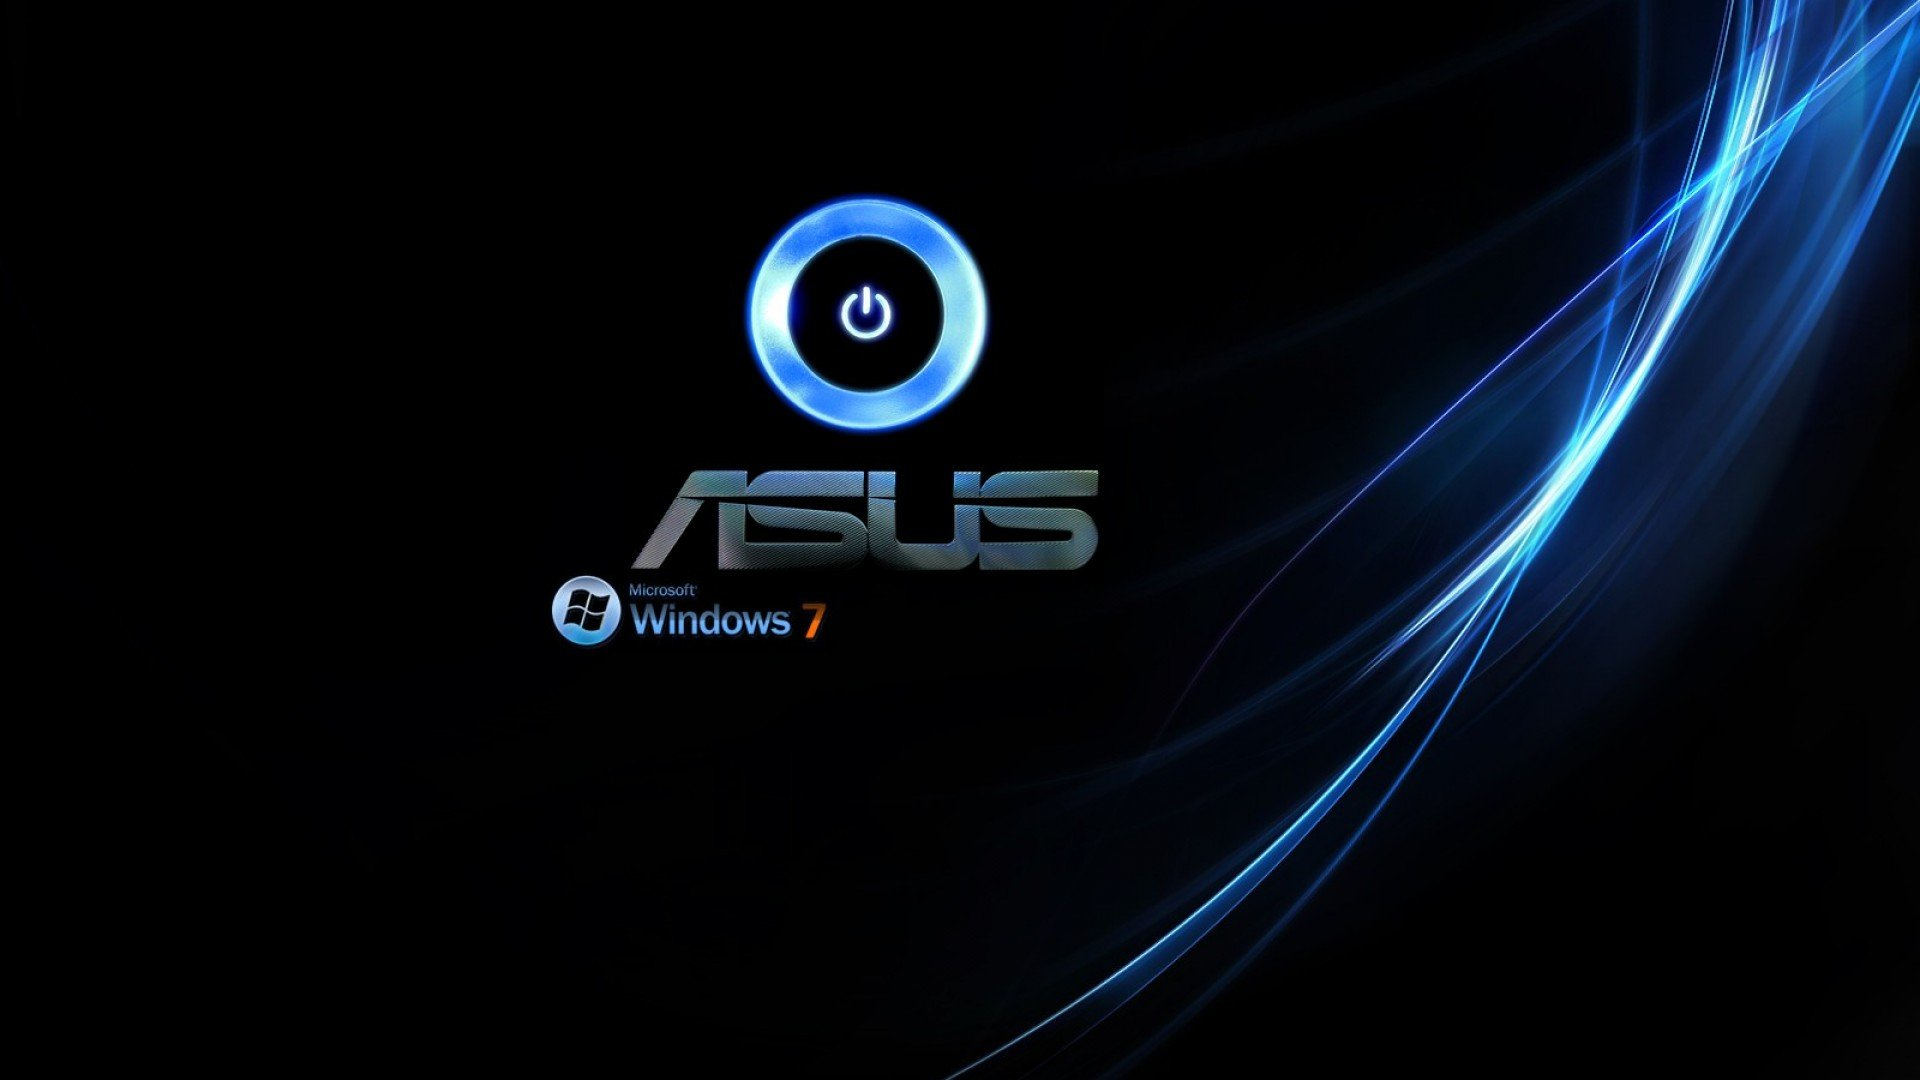 Asus HD Wallpaper Background Image